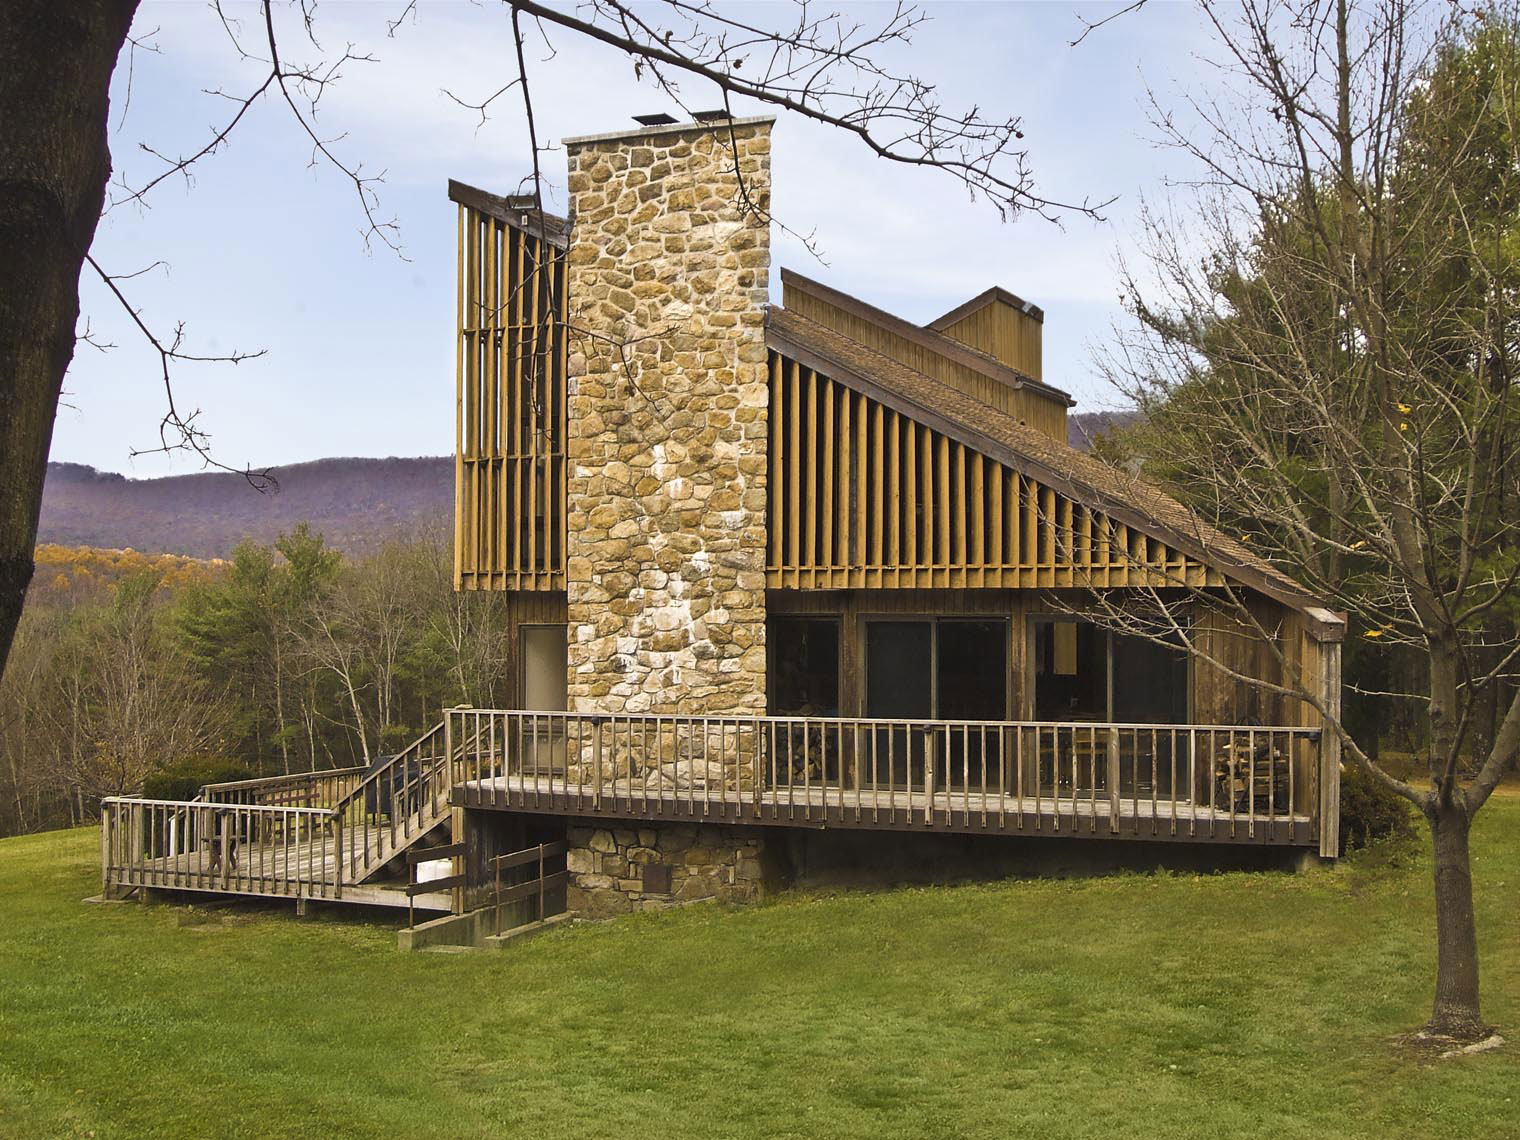 Mountain-view Vacation Home, Architecture by Kenneth E. Hurd & Associates